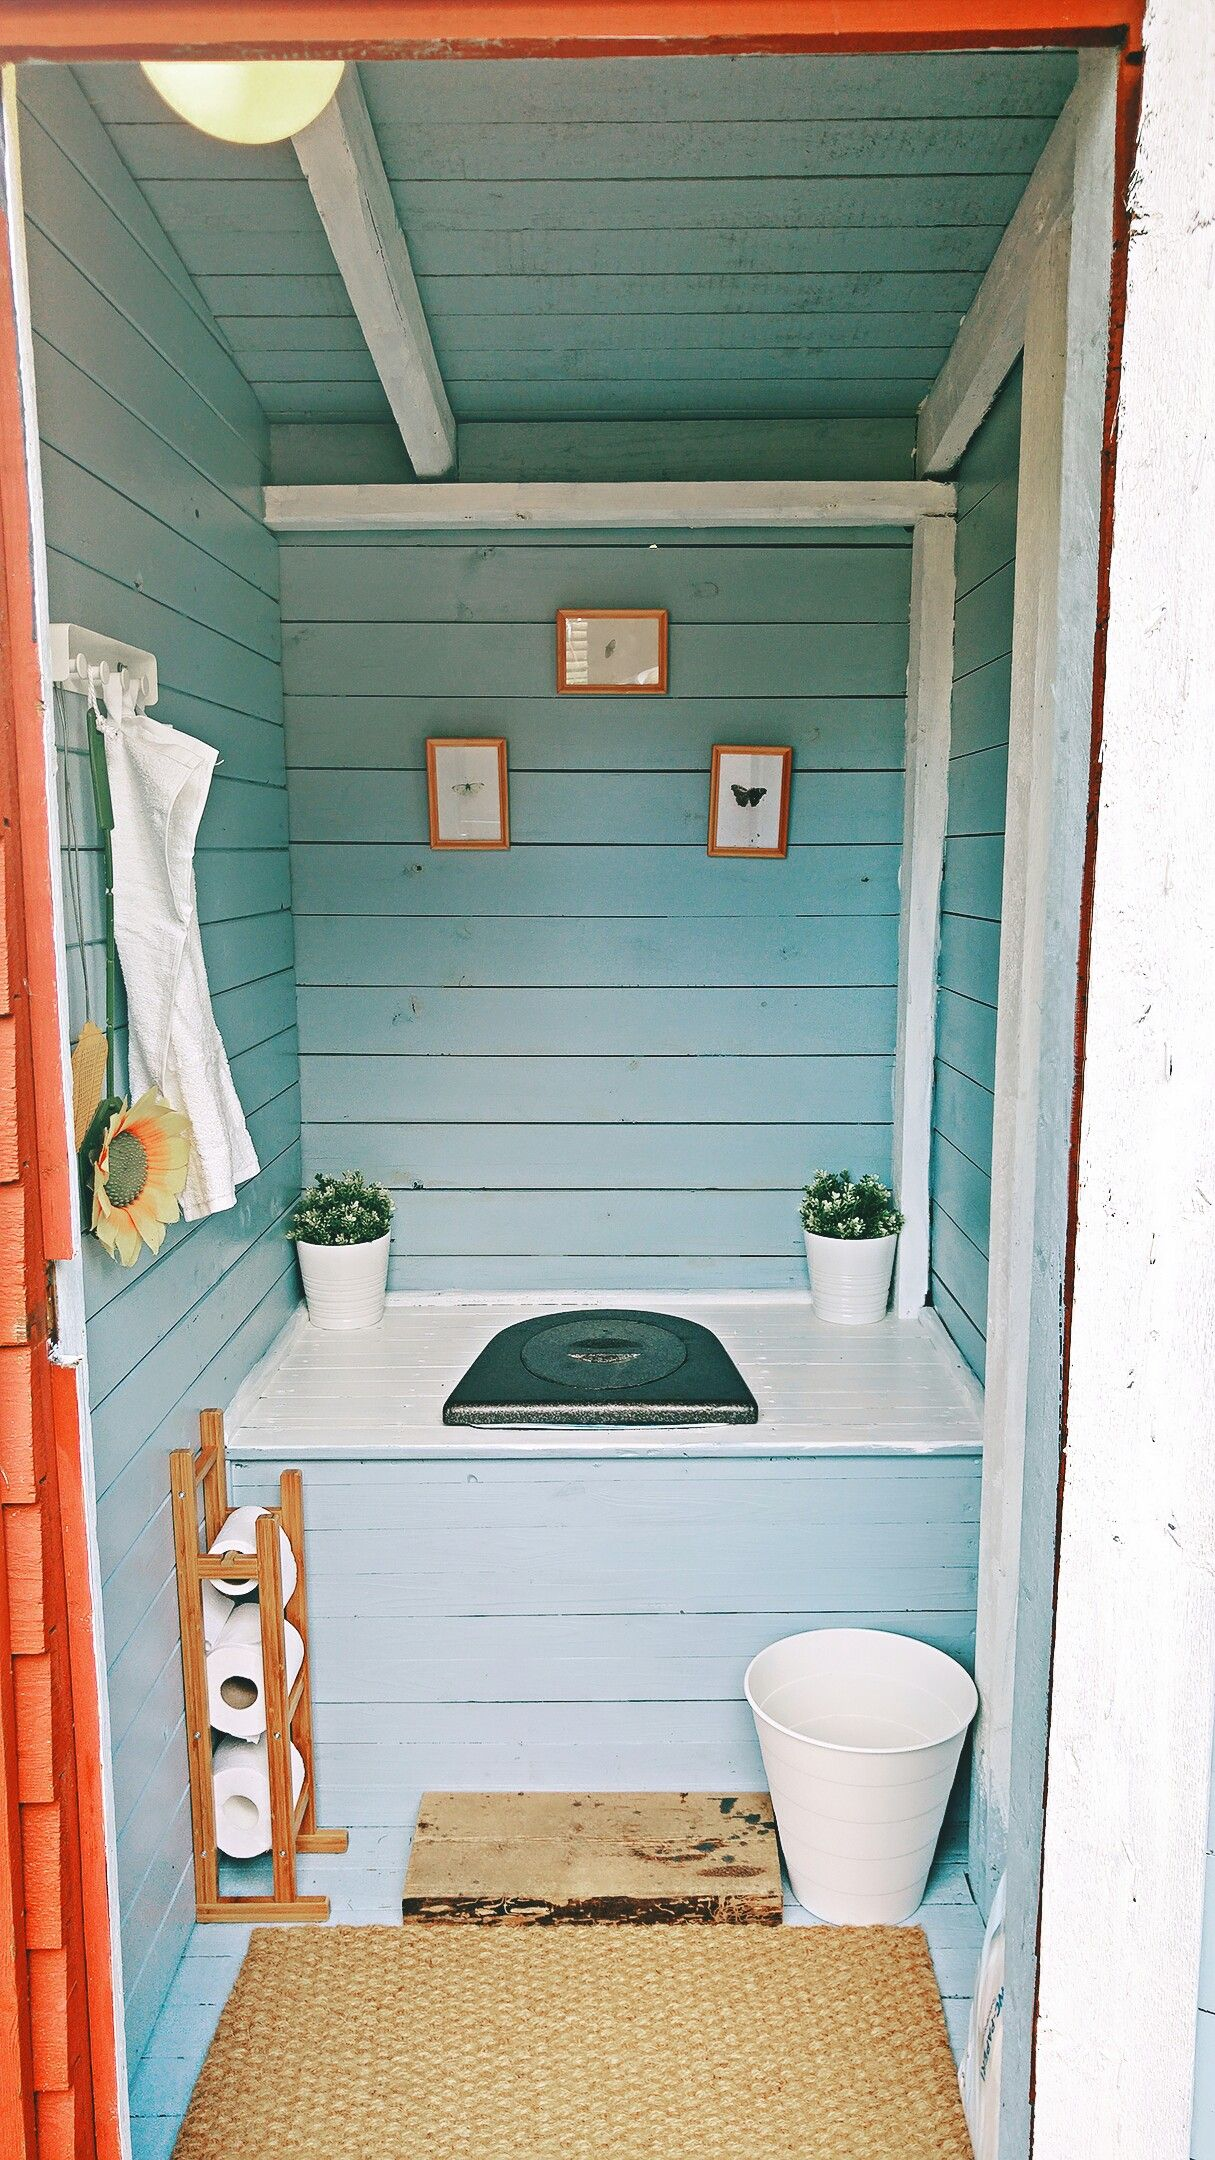 Outhouse ideas and inspiration remodeling huussin sisustus also rh pinterest